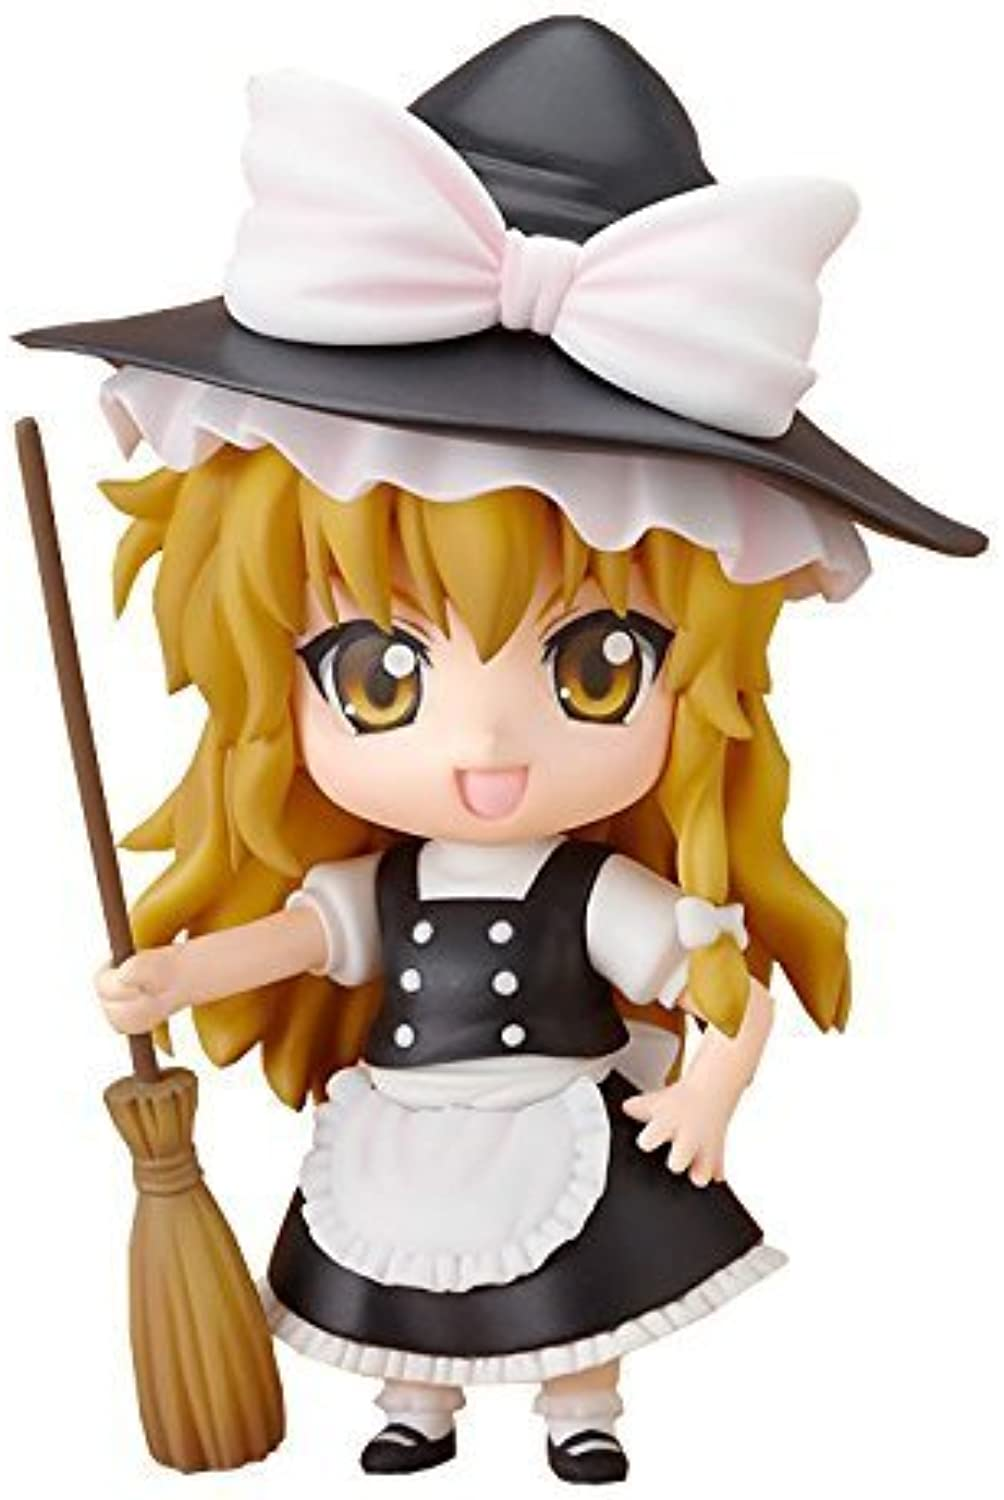 Good Smile Touhou Project  Marisa Kirisame Nendgoldid Action Figure